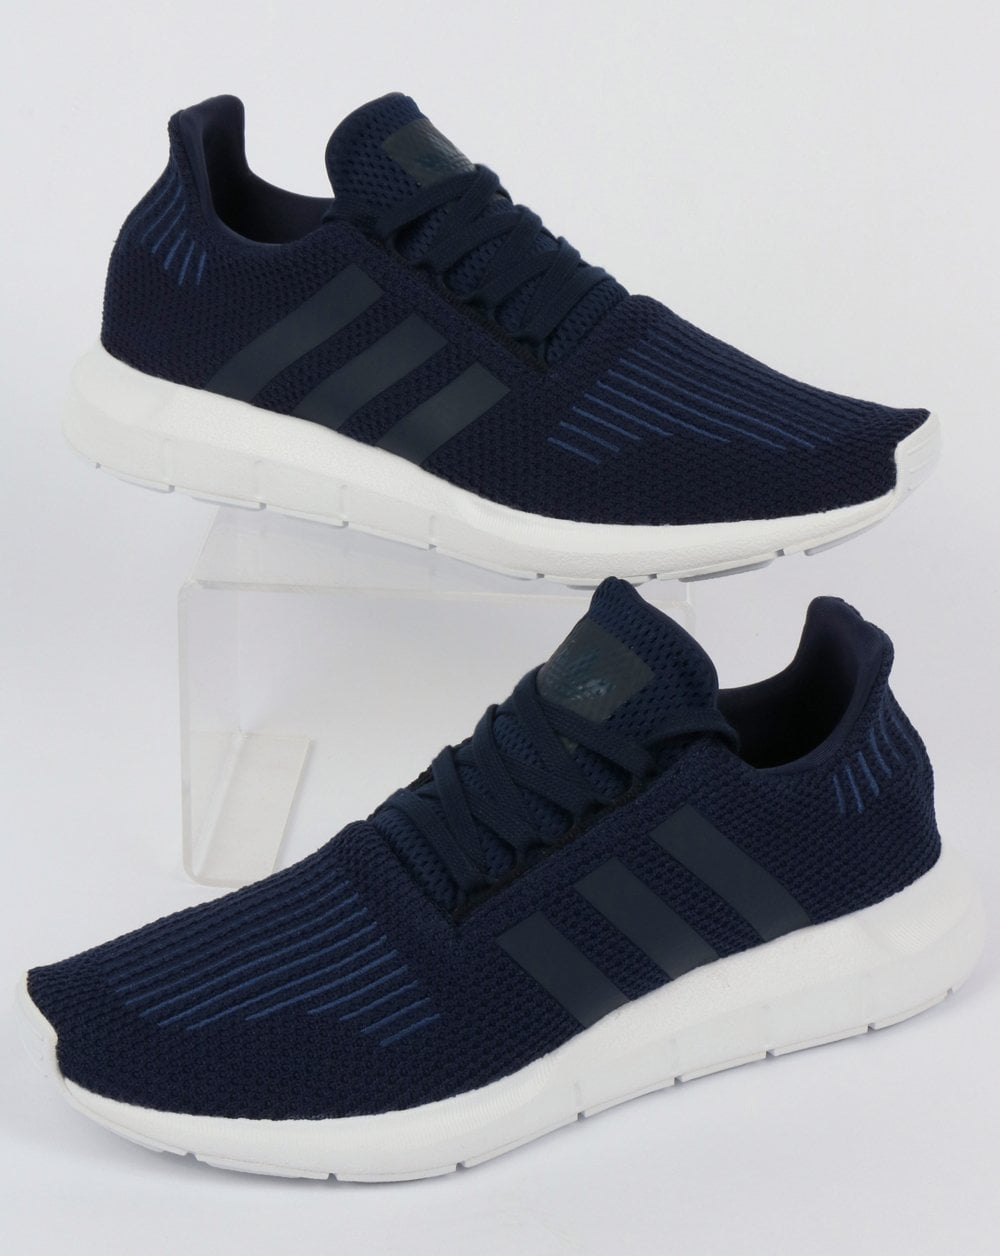 32d554607016 adidas Trainers Adidas Swift Run Trainers Navy White